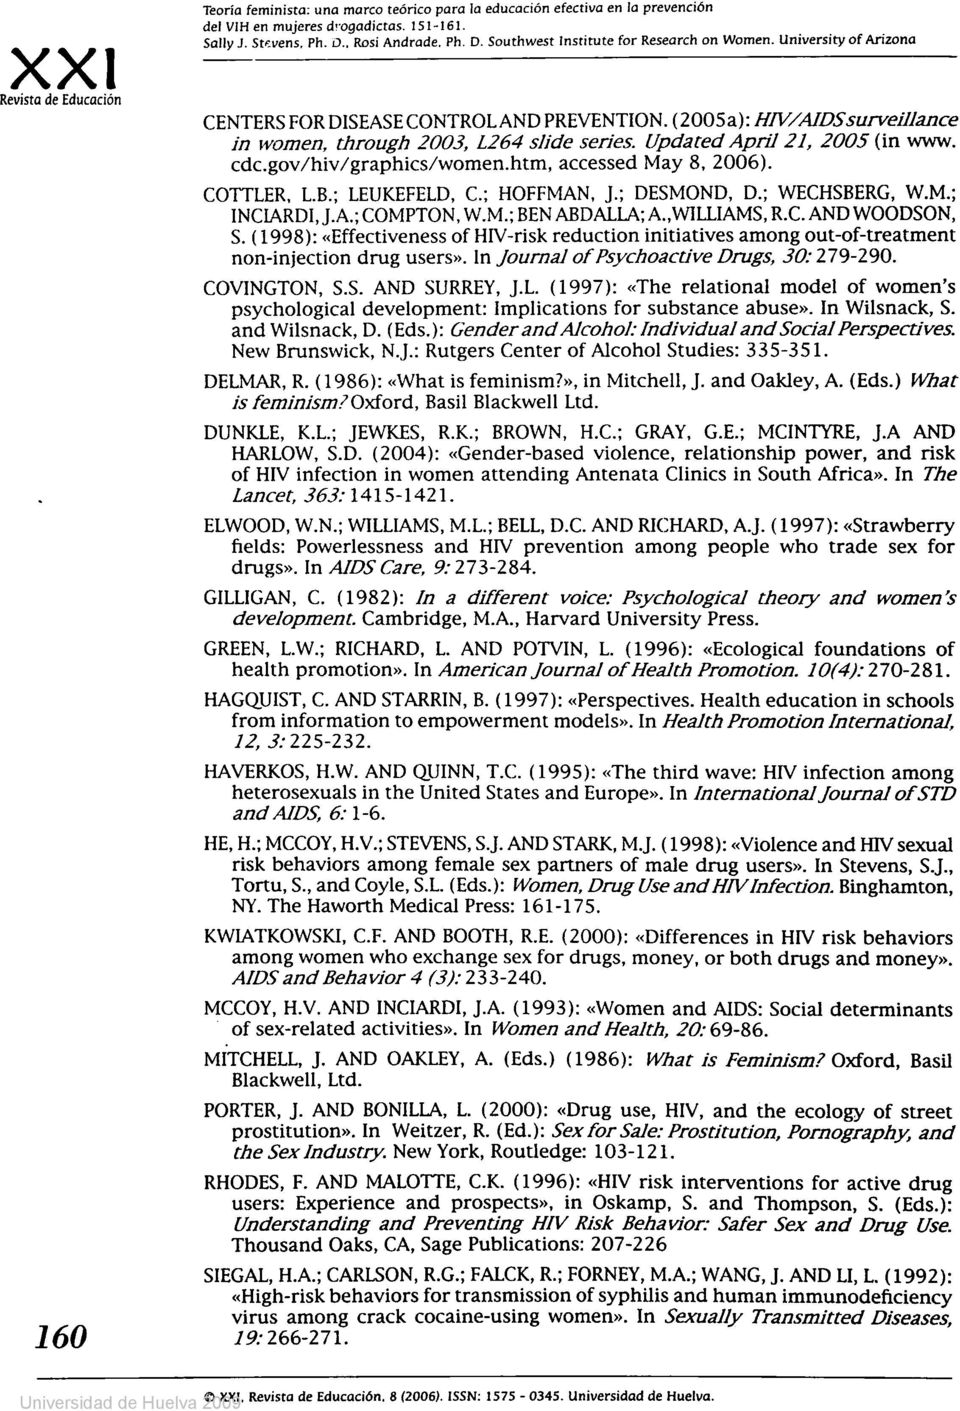 gov/hiv/graphics/women.htm, accessed May 8, 2006). COTTLER, L.B.; LEUKEFELD, C.; HOFFMAN, J.; DESMOND, D.; WECHSBERG, W.M.; INCIARDI, J.A.; COMPTON, W.M.; BEN ABDALLA; A.,WILLIAMS, R.C. AND WOODSON, S.